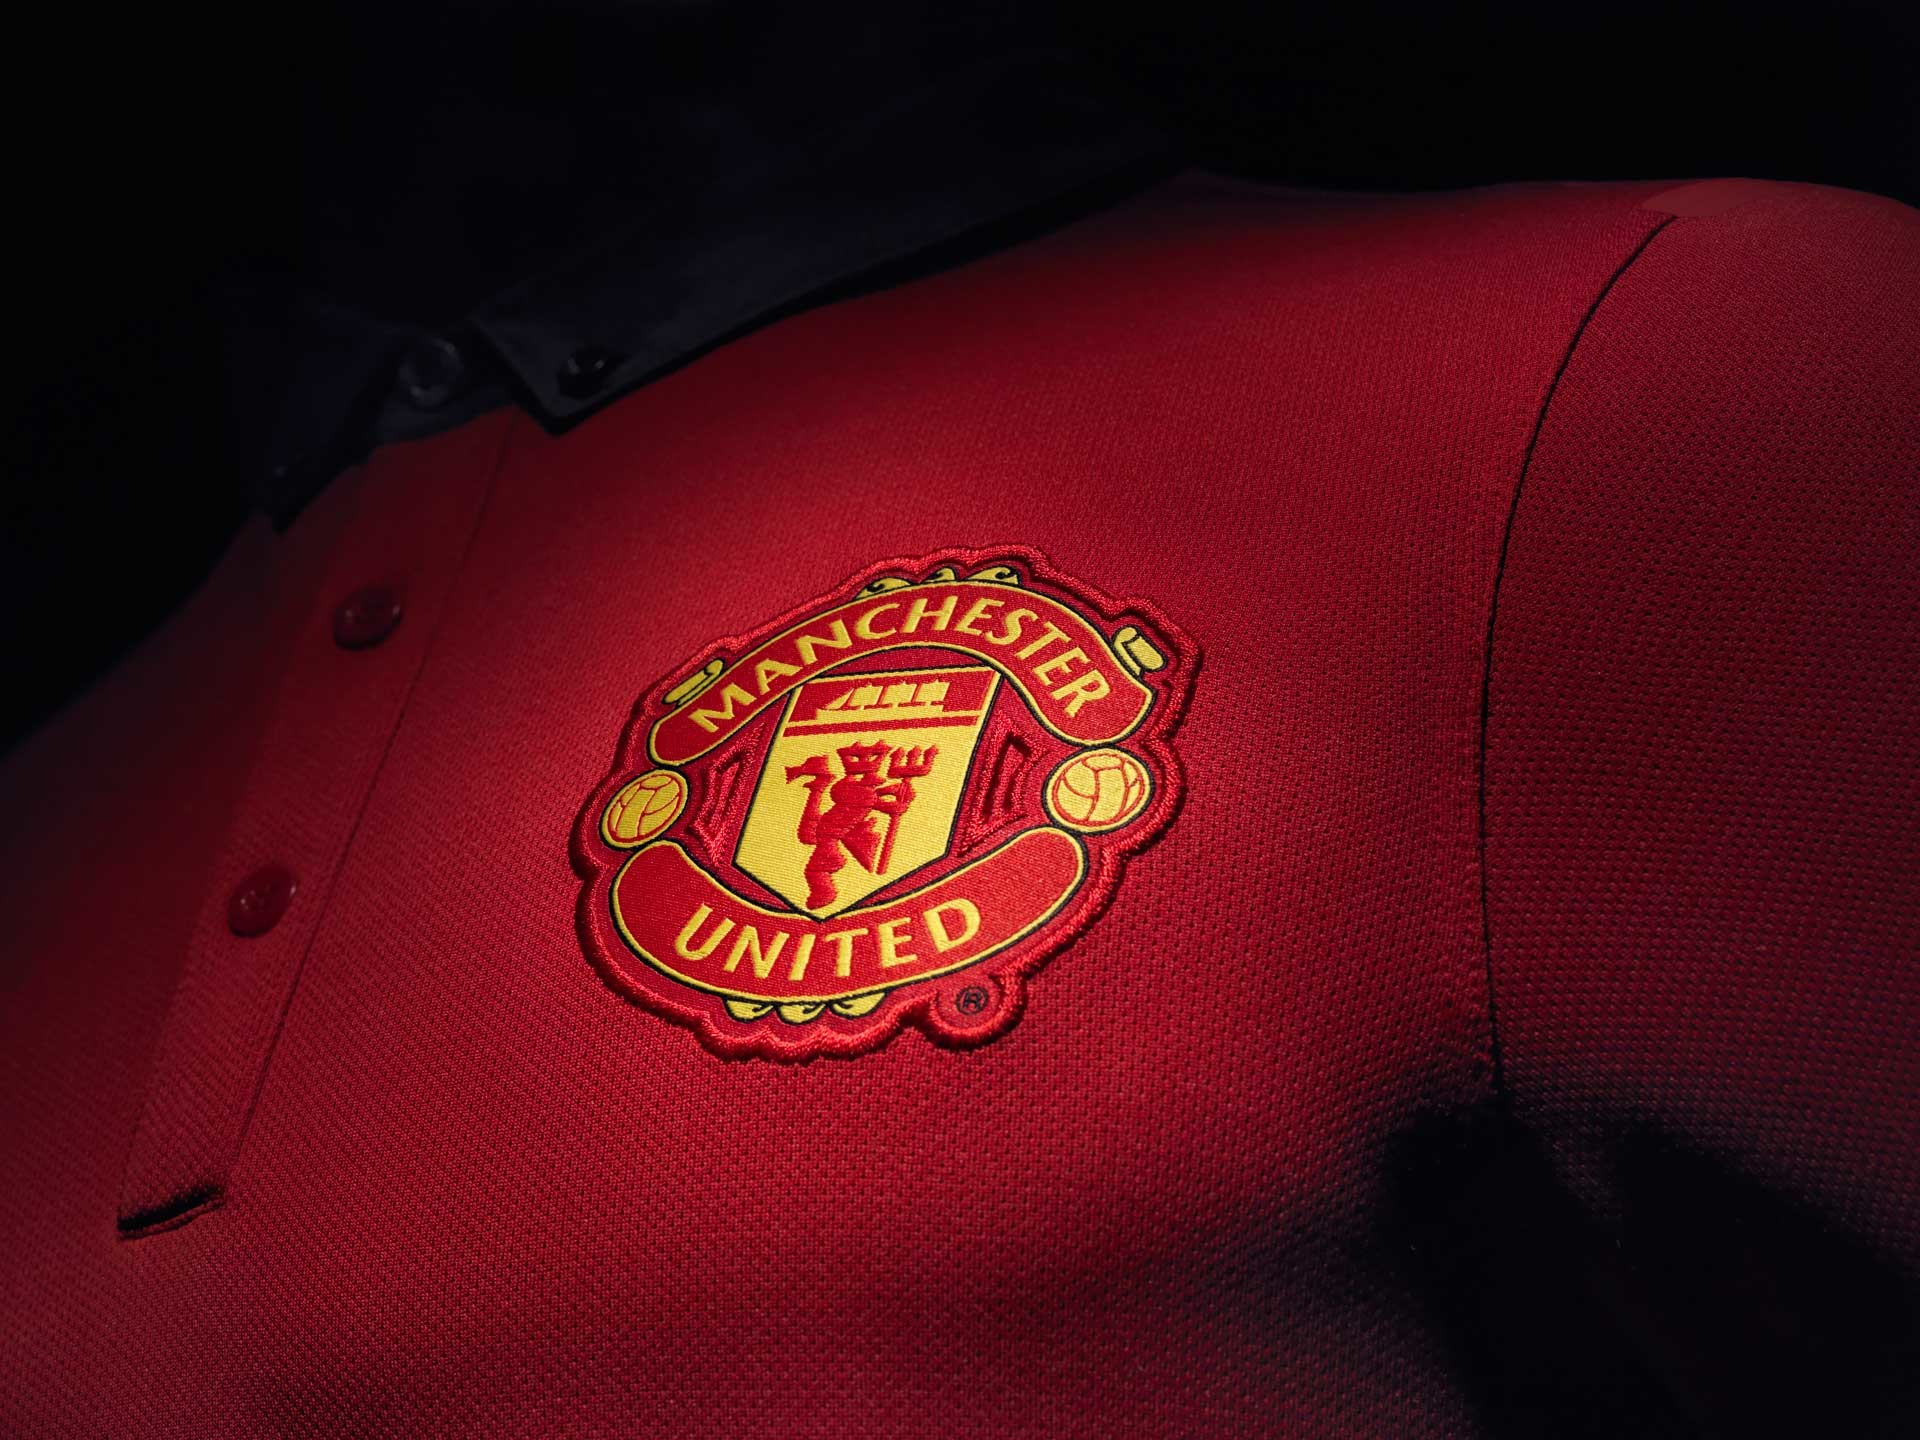 1920x1440 Manchester United crest logo in the jersey 2014-2015 wallpaper